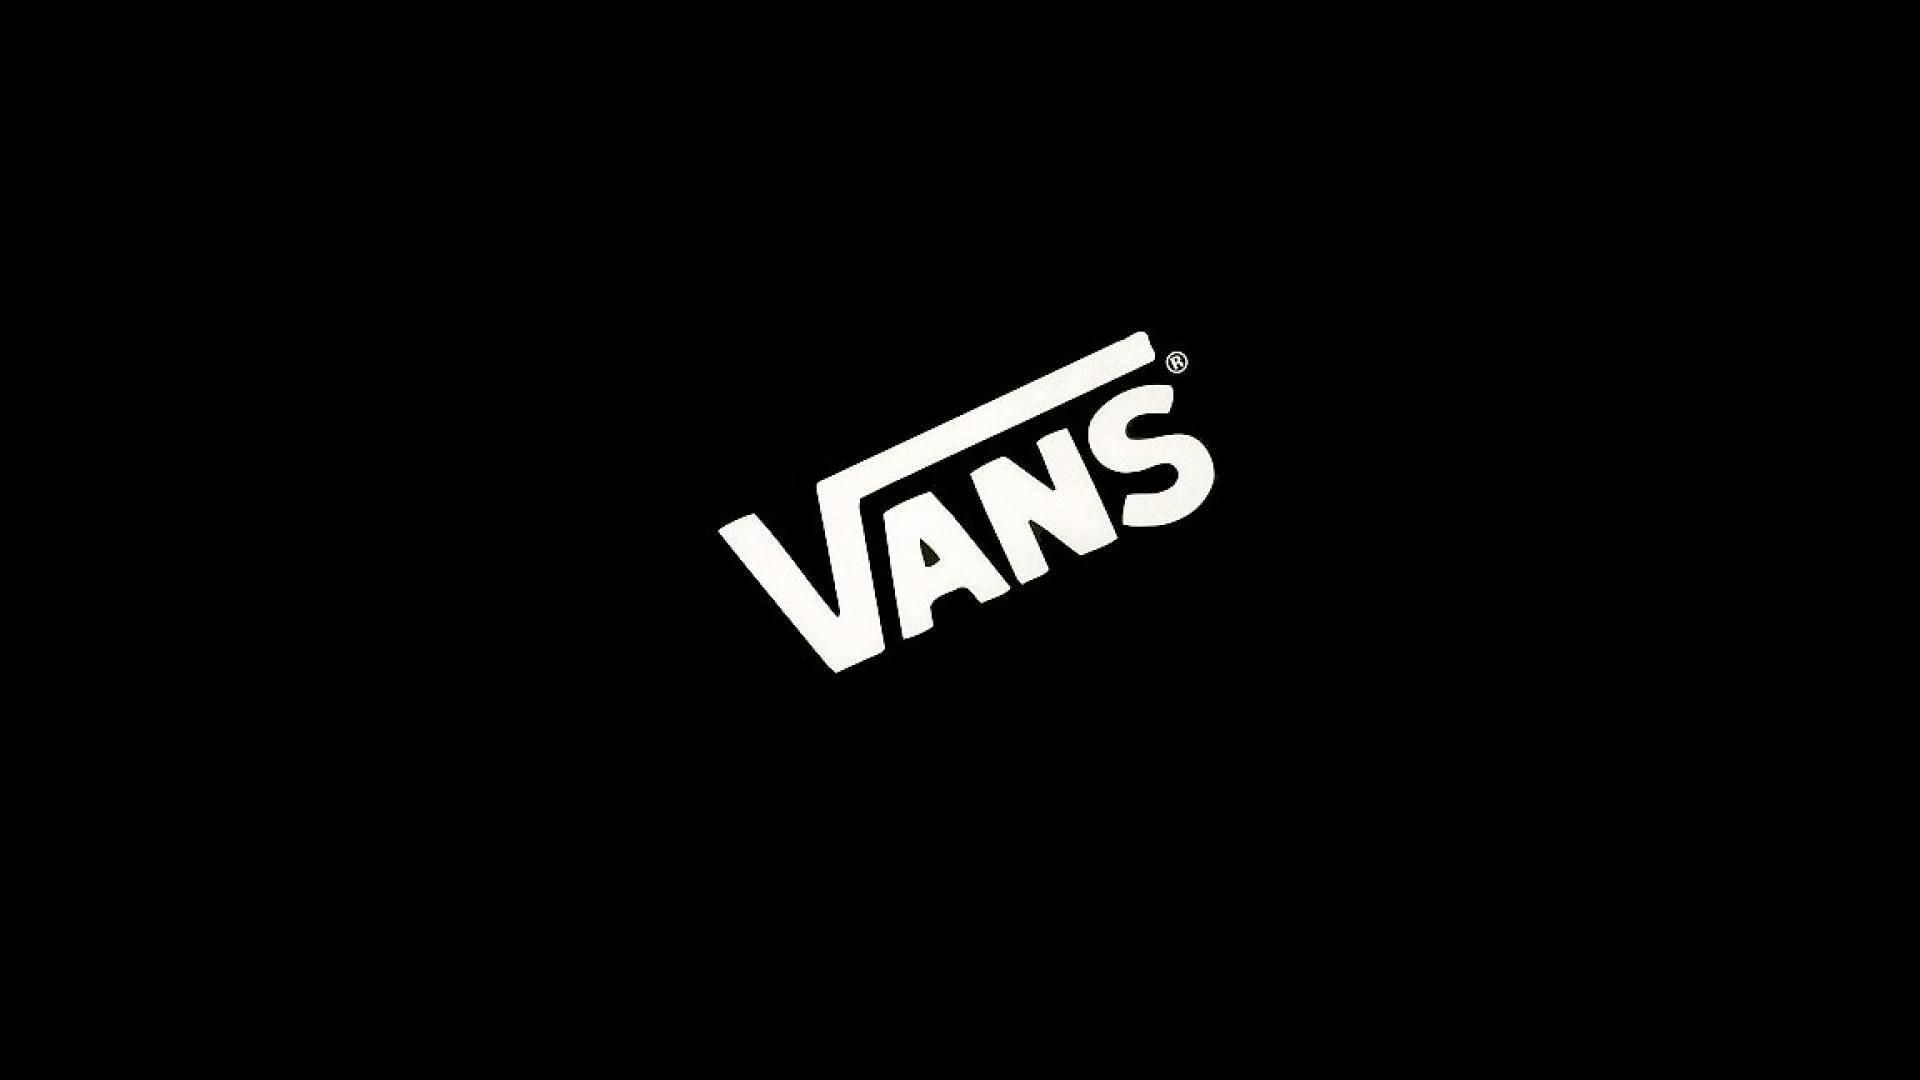 Vans Desktop Wallpaper Hypebeast Wallpapers Nixxboi